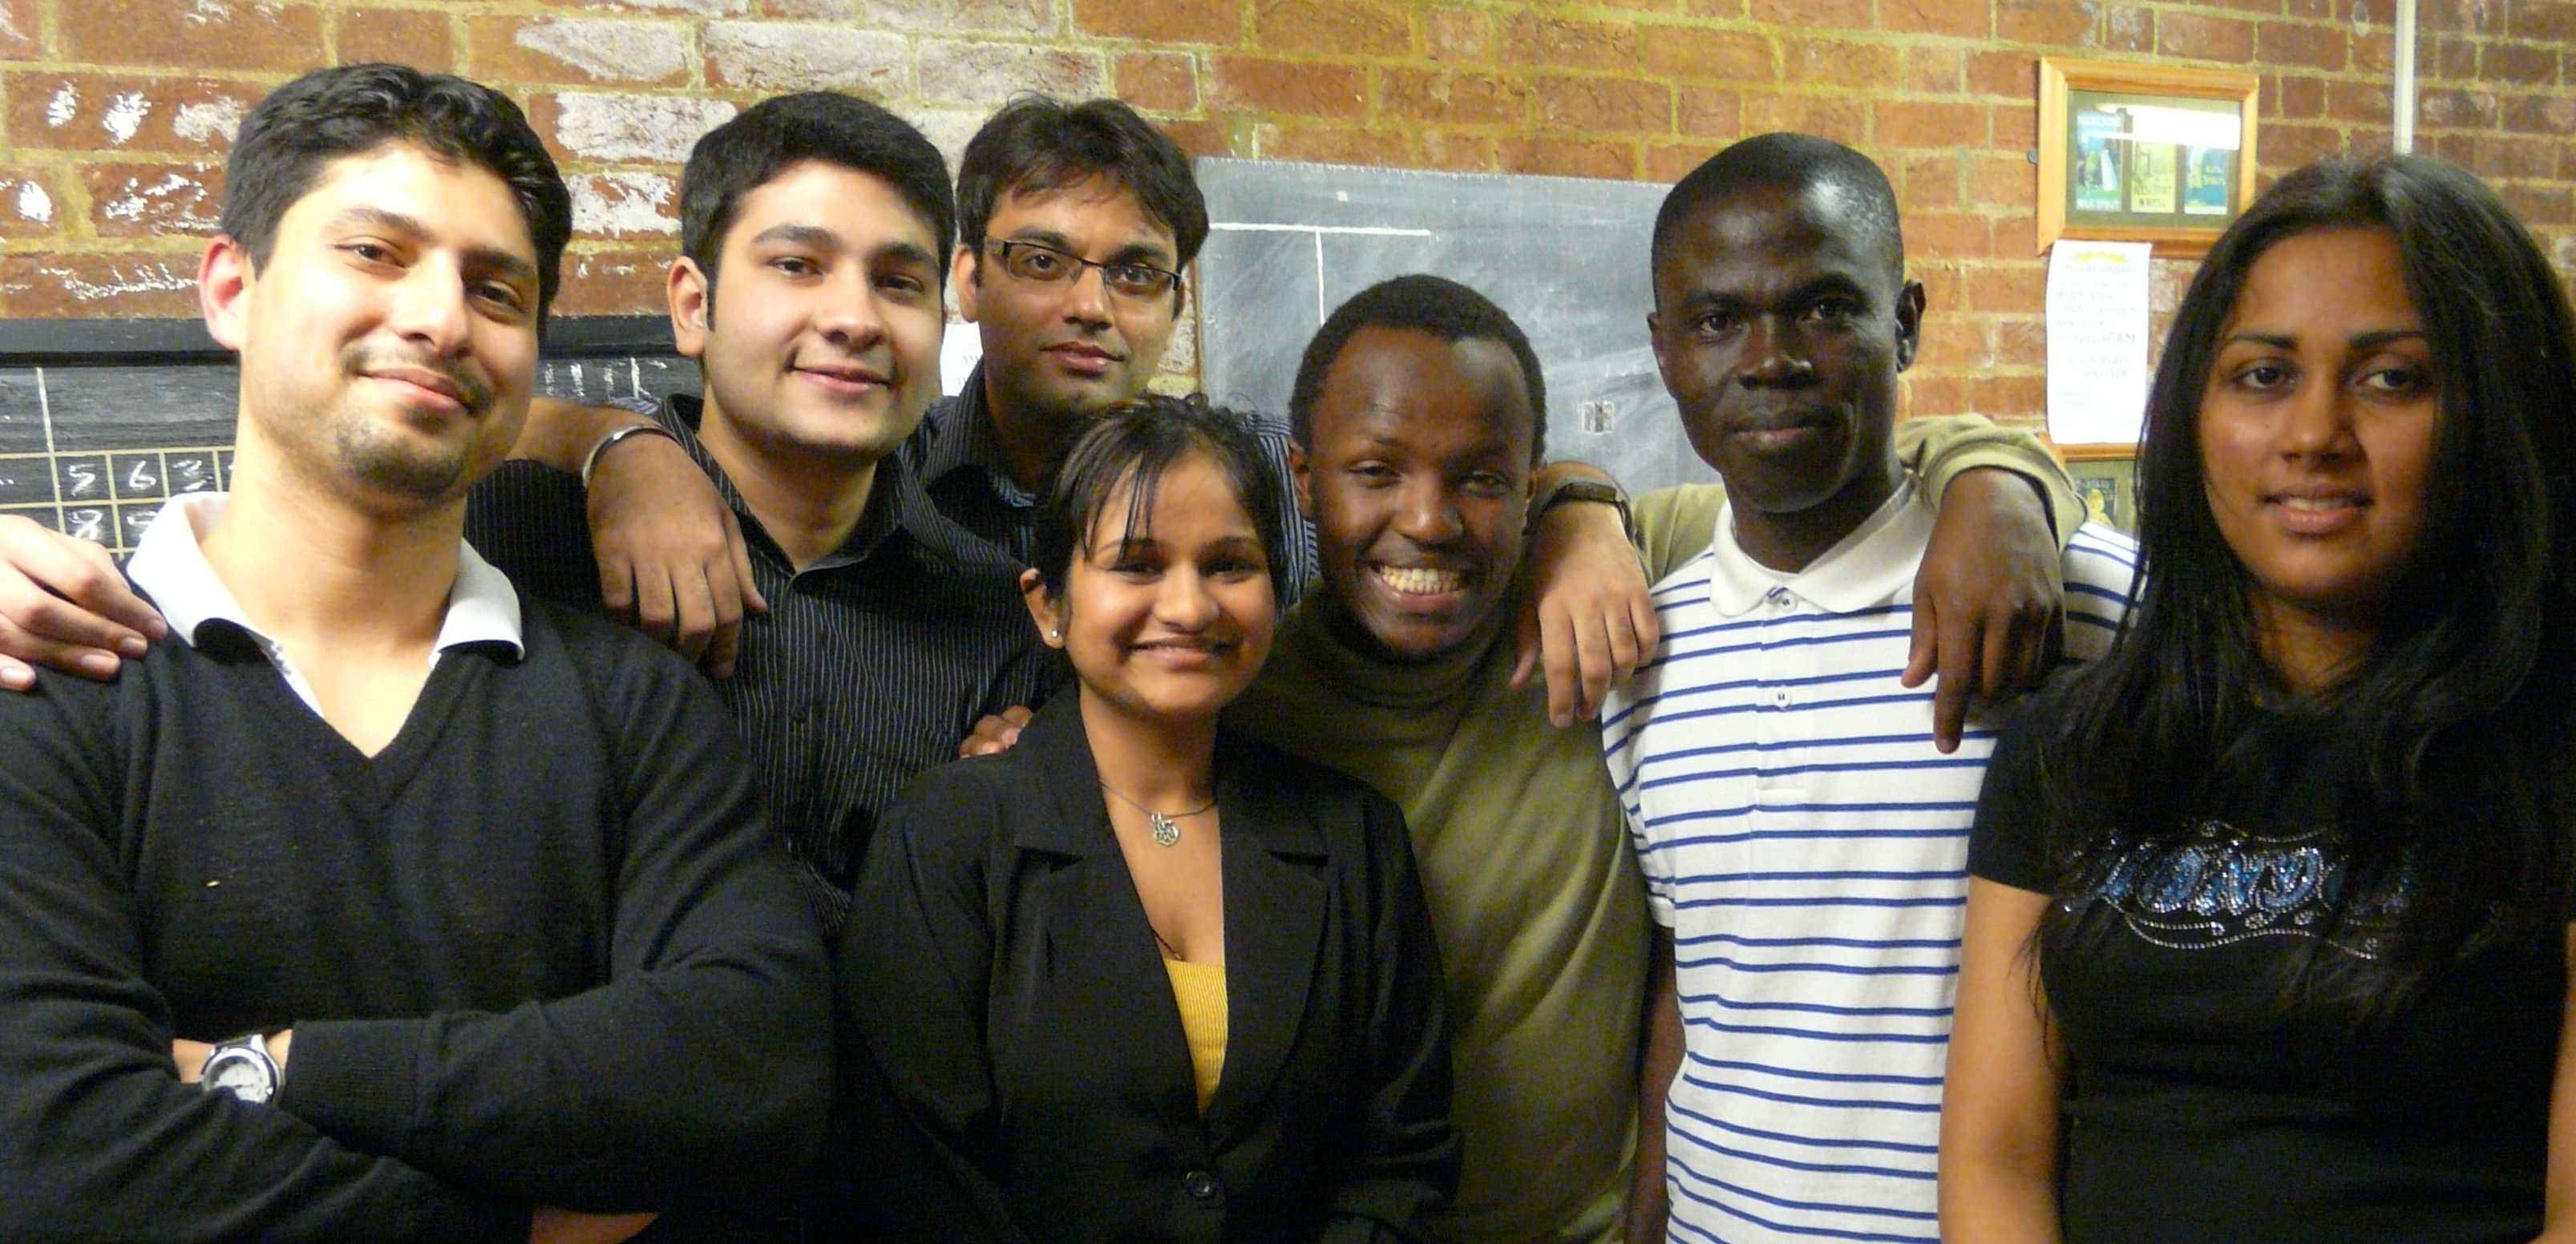 MBA students who took part in 2010 LATi case study project